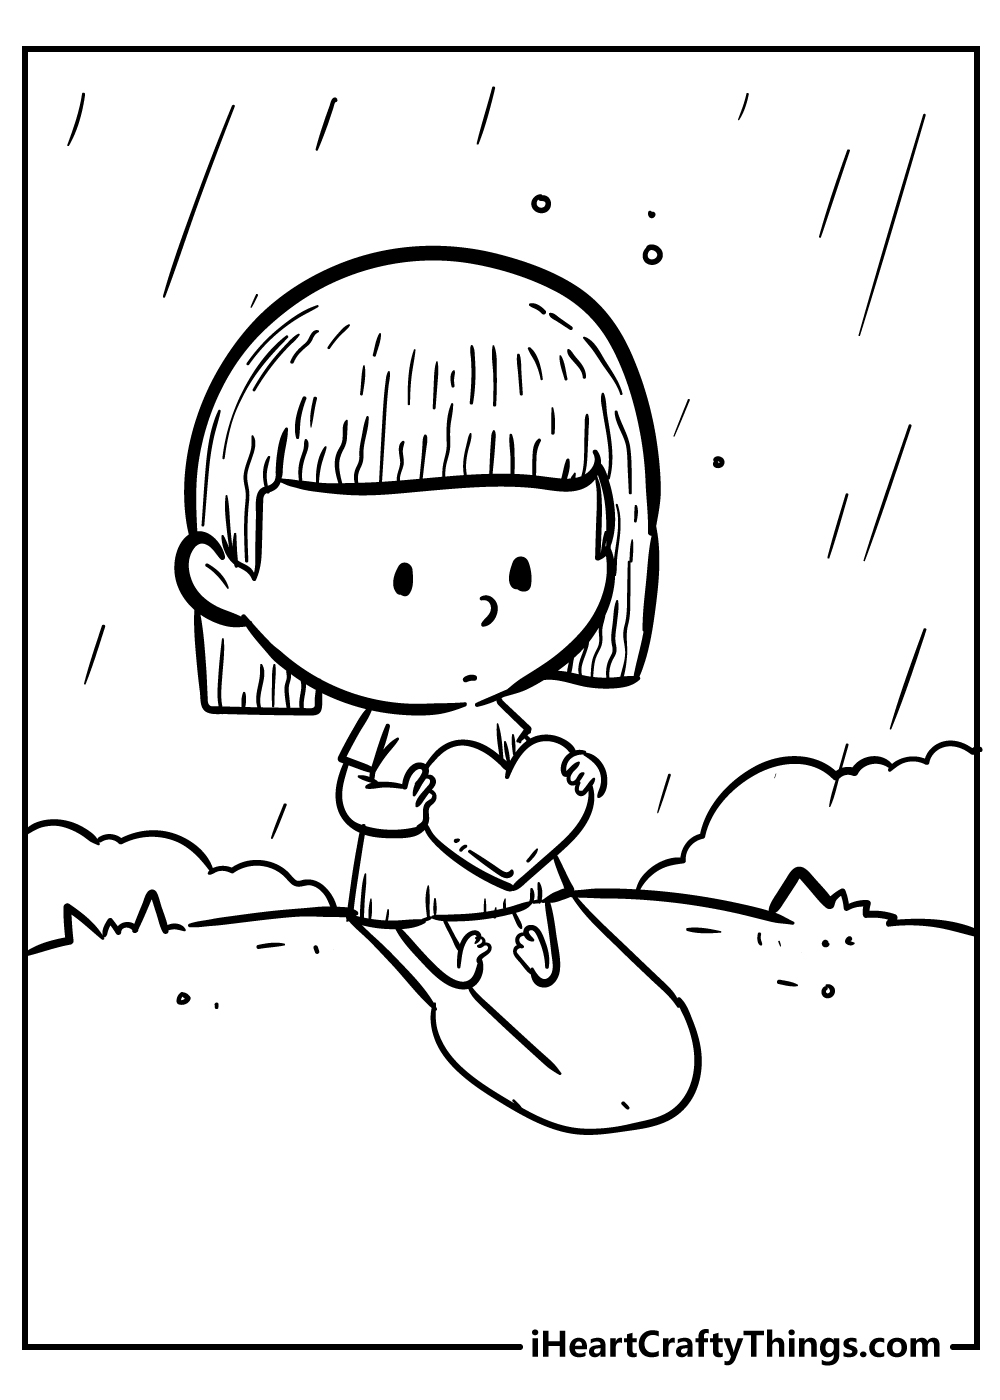 heart coloring page for kids